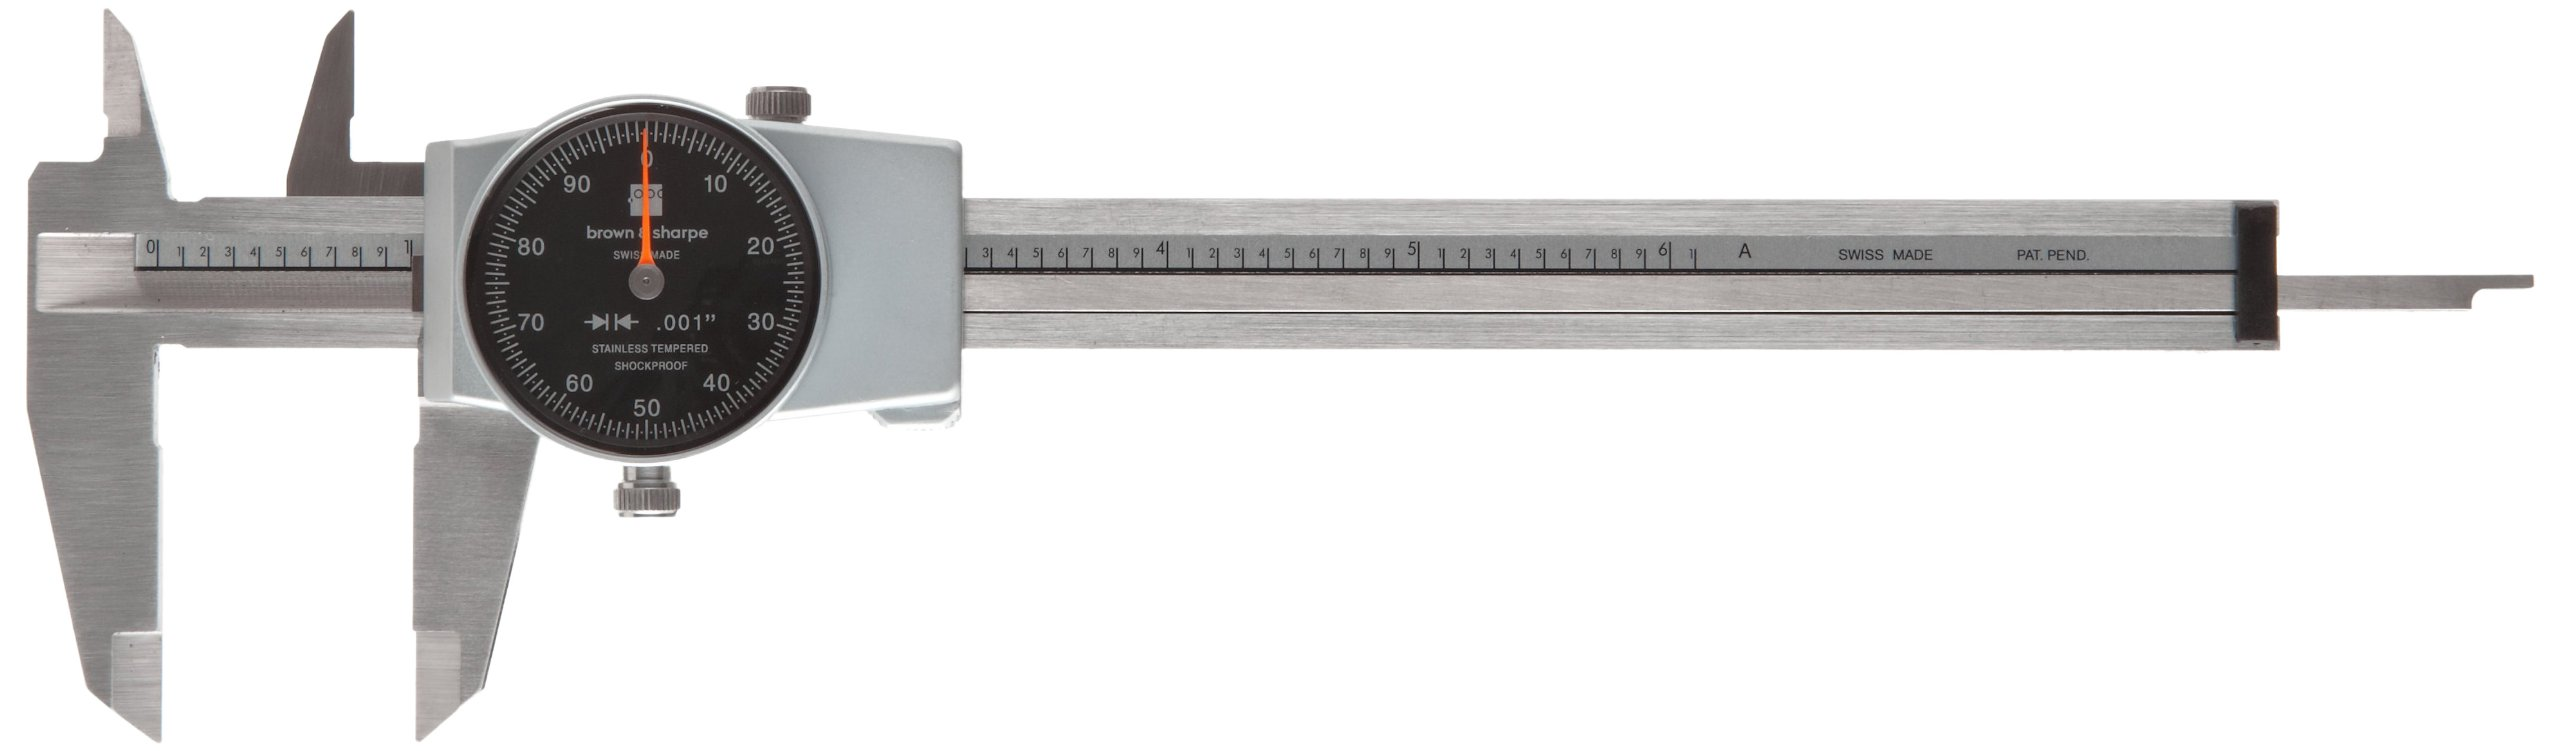 Brown & Sharpe 599-579-5 Dial Caliper, Stainless Steel, Black Face, 0-6'' Range, +/-0.001'' Accuracy, 0.001'' Resolution, Meets DIN 862 Specifications